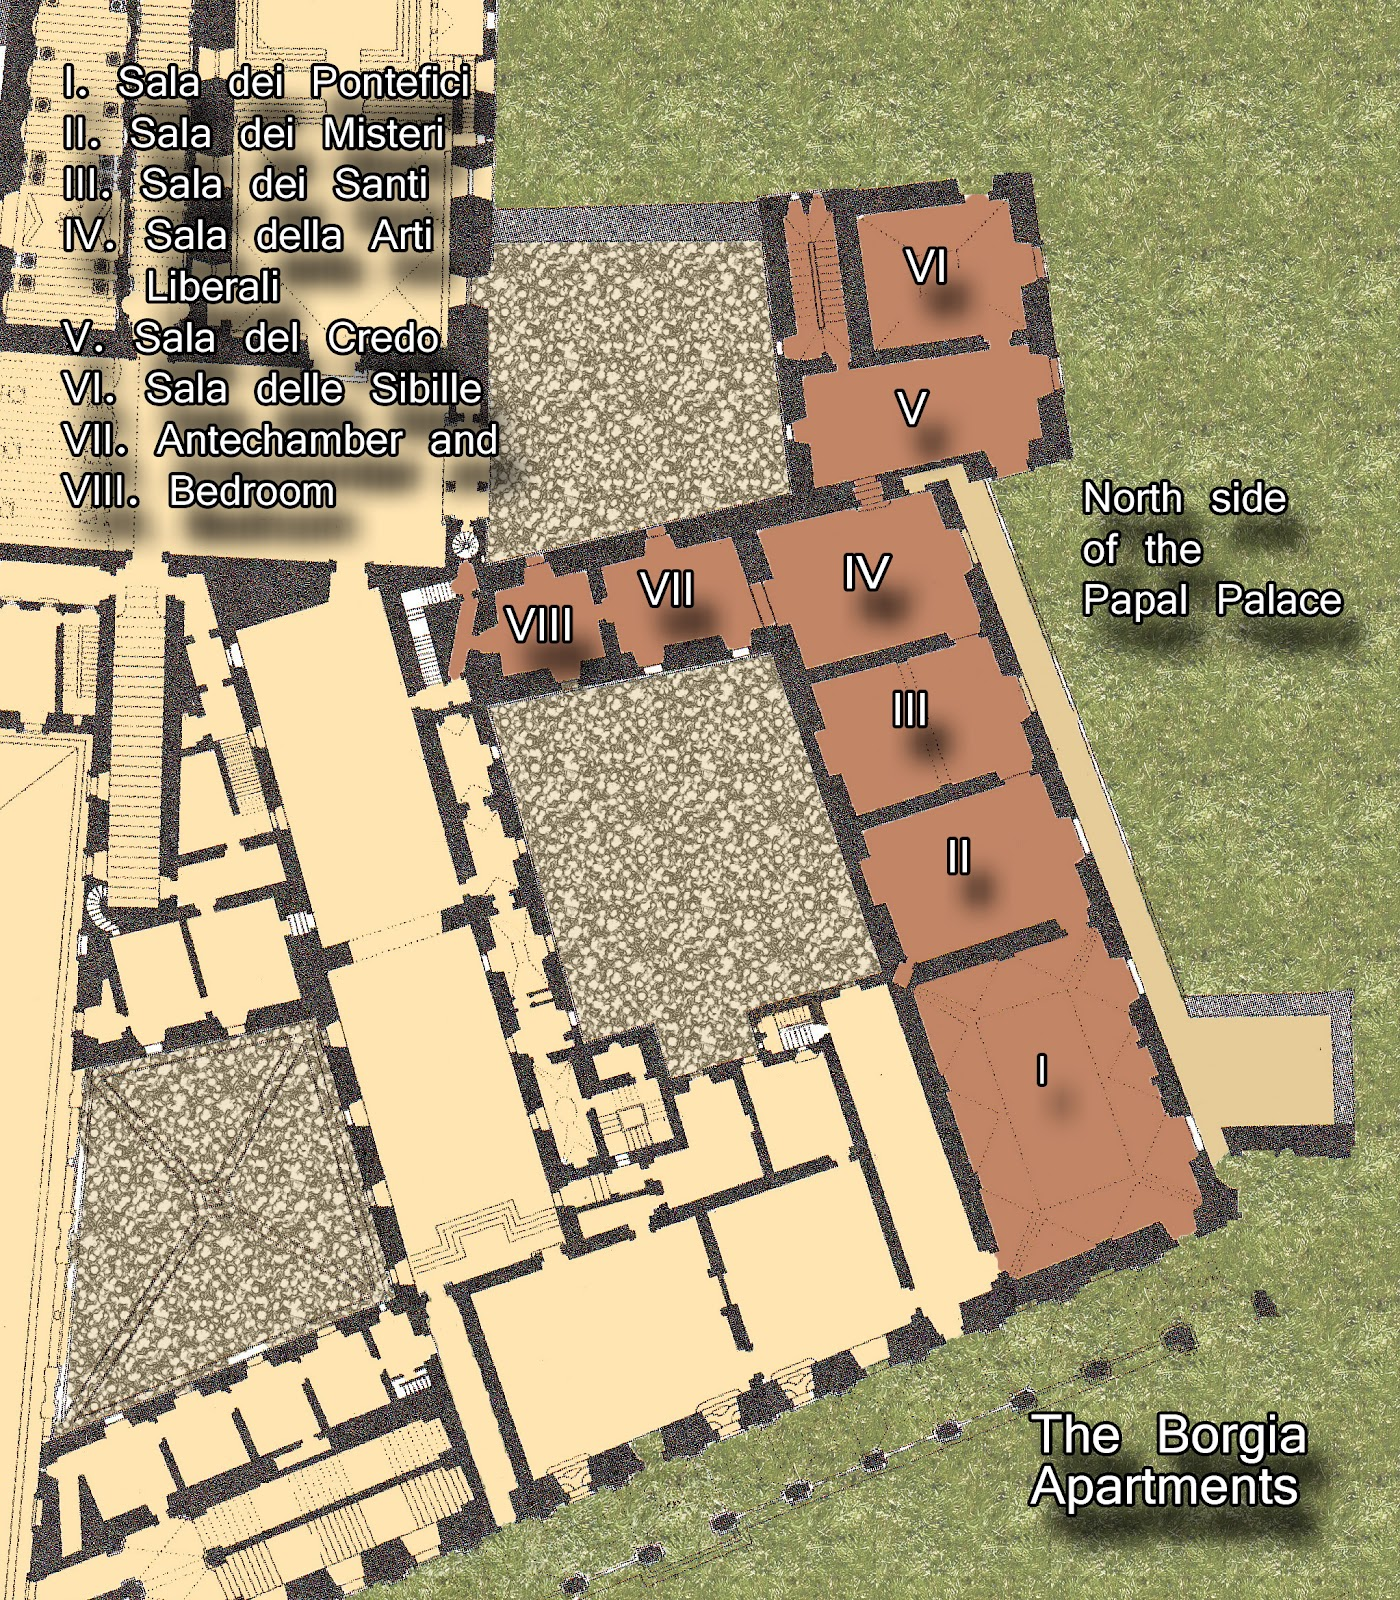 Finding Reliable Maps Of The Apartments With More Detail Showing Windows For Example Is Difficult Best I Could Trace Are Those Paul